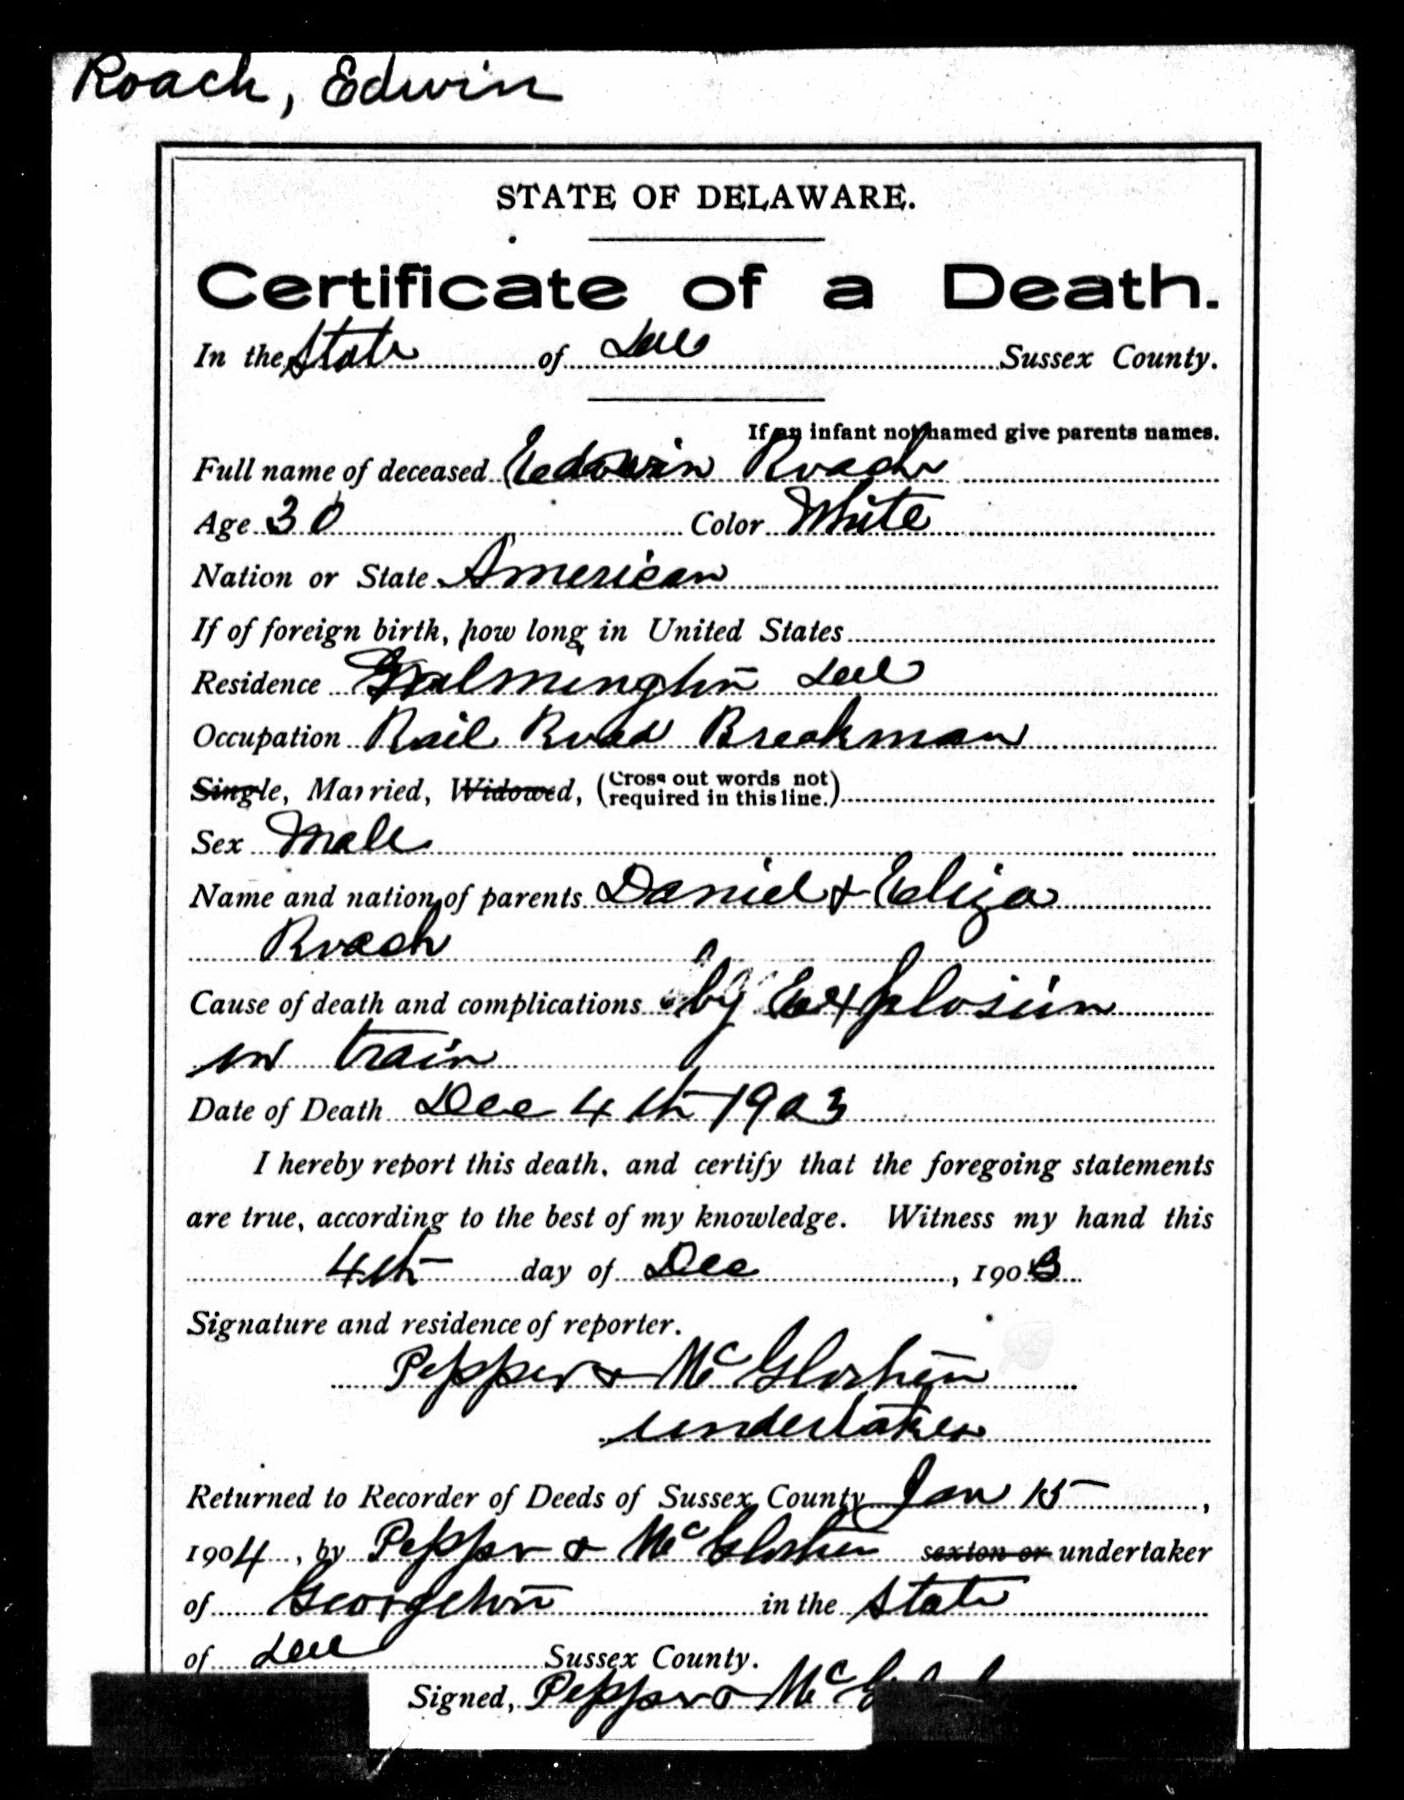 Mike dixon mikes history blog page 2 delaware death certificate for edwin roach source jane roach butler and harry edwin roach xflitez Image collections